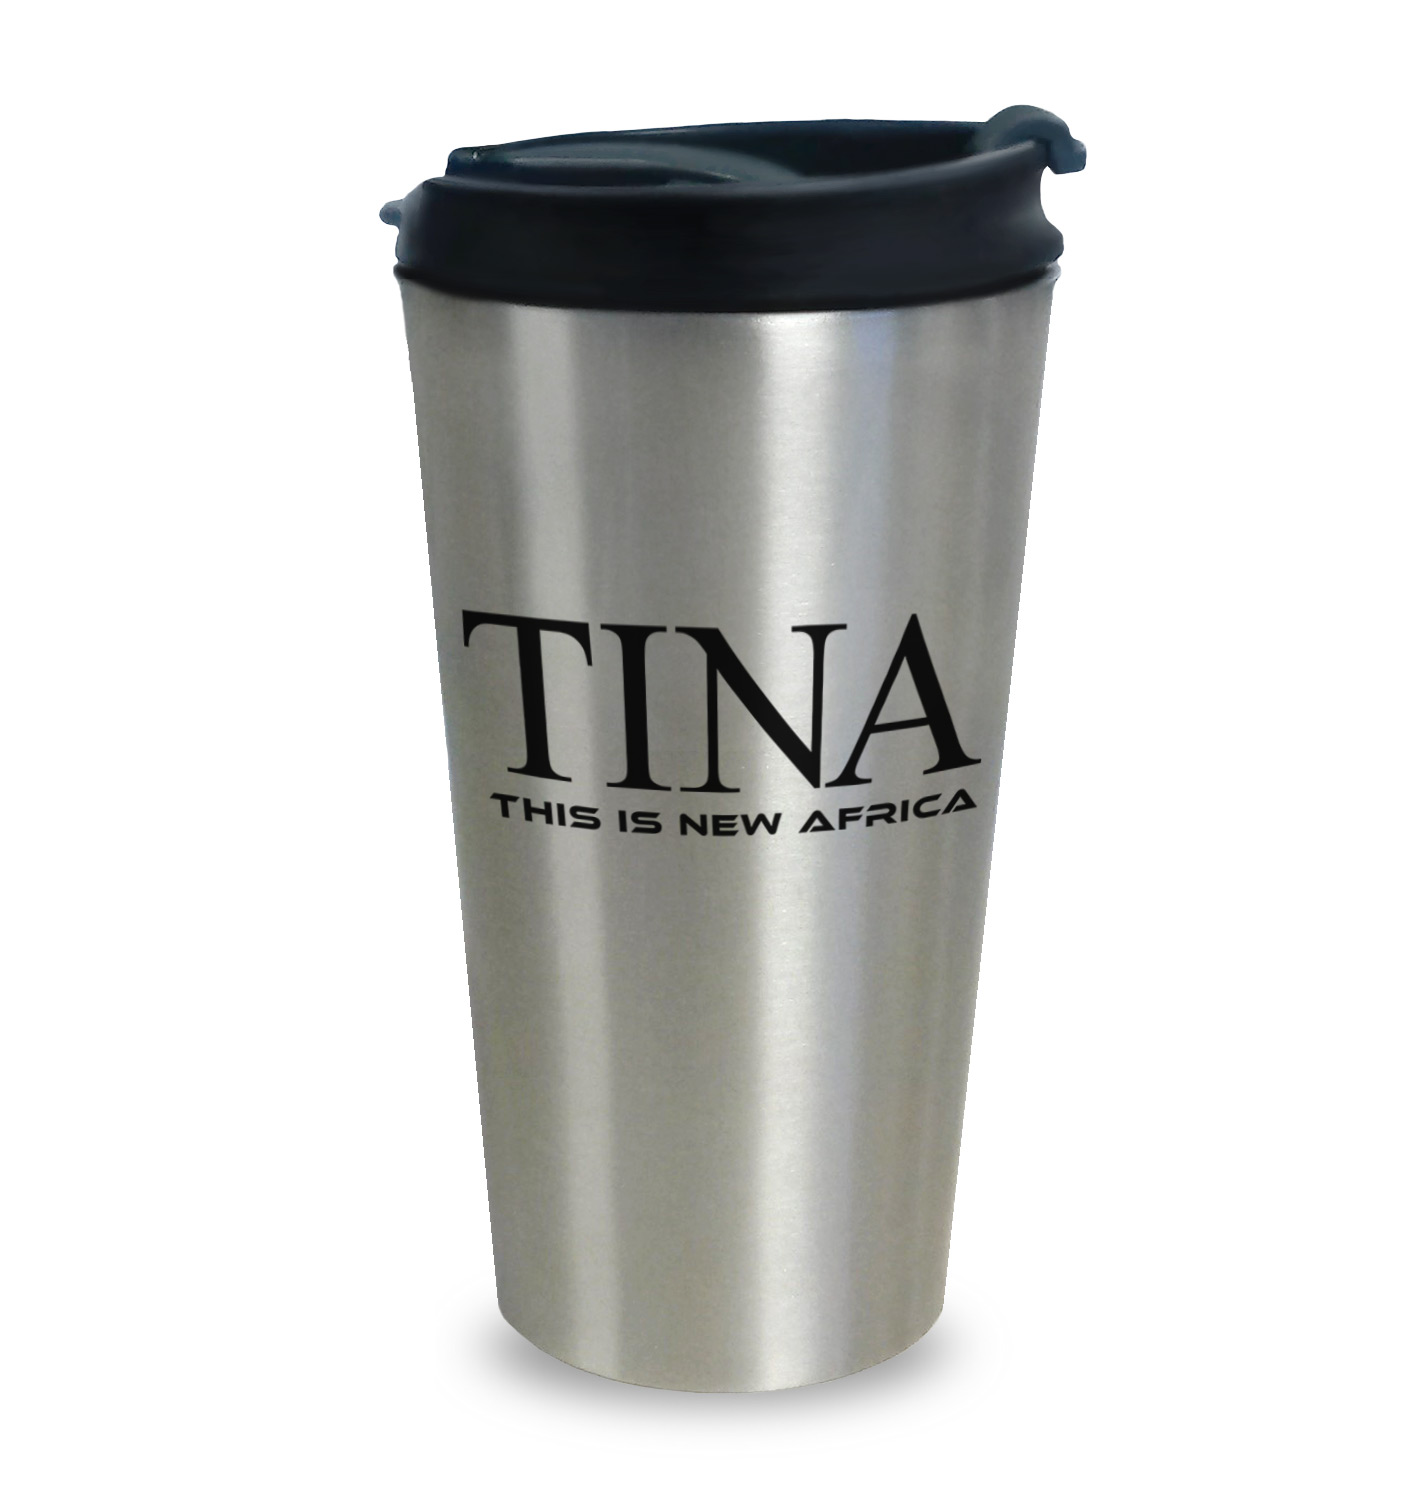 TINA Travel Latte Mug Image